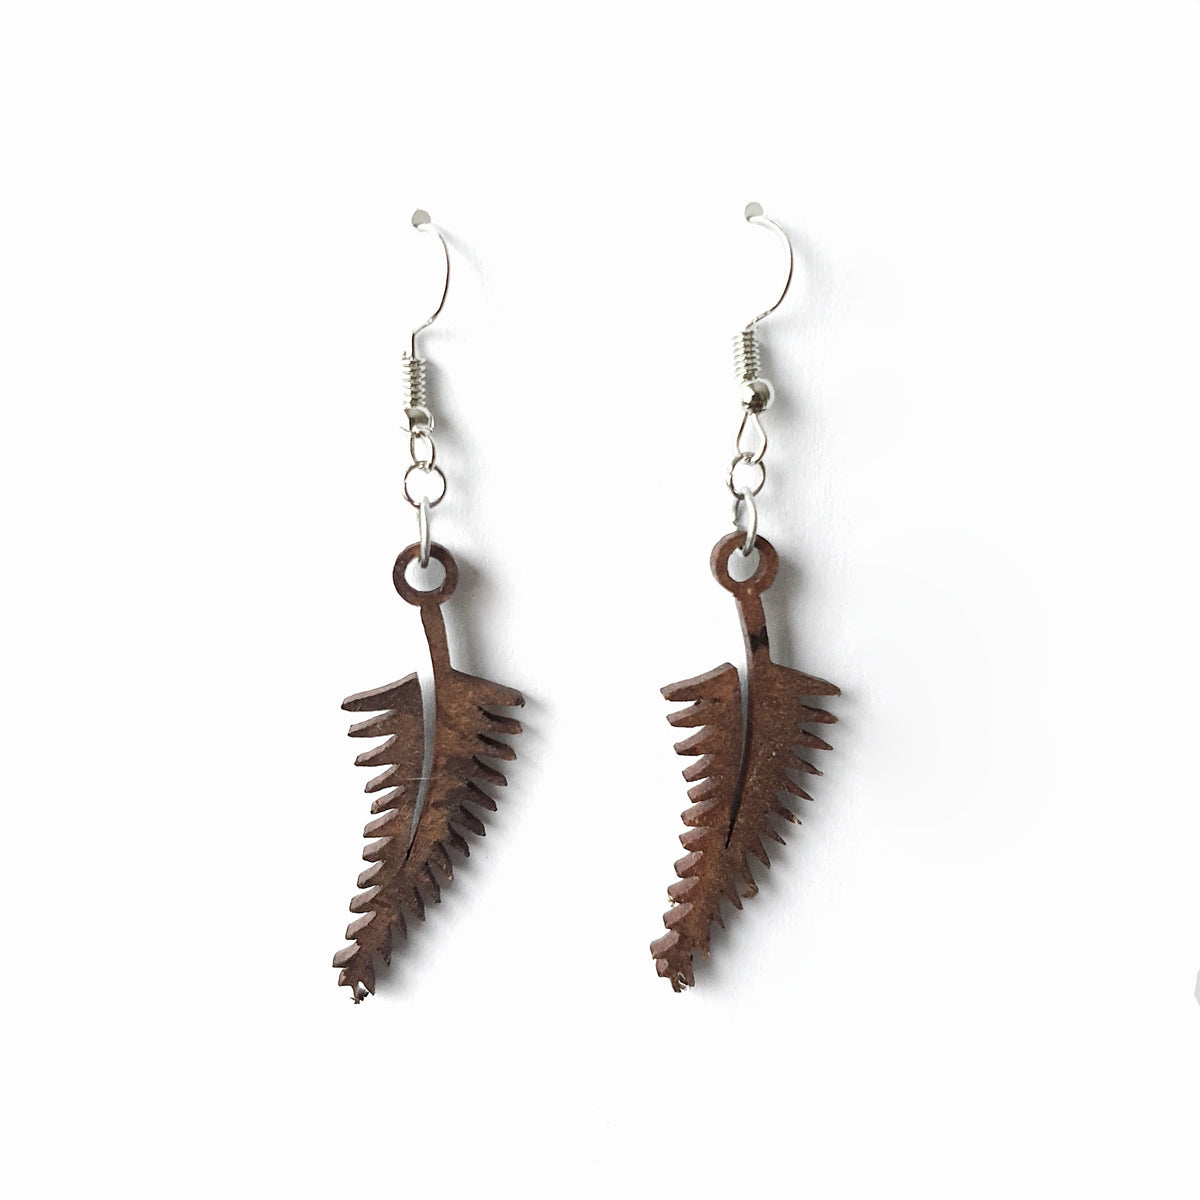 Wooden Fern Earrings